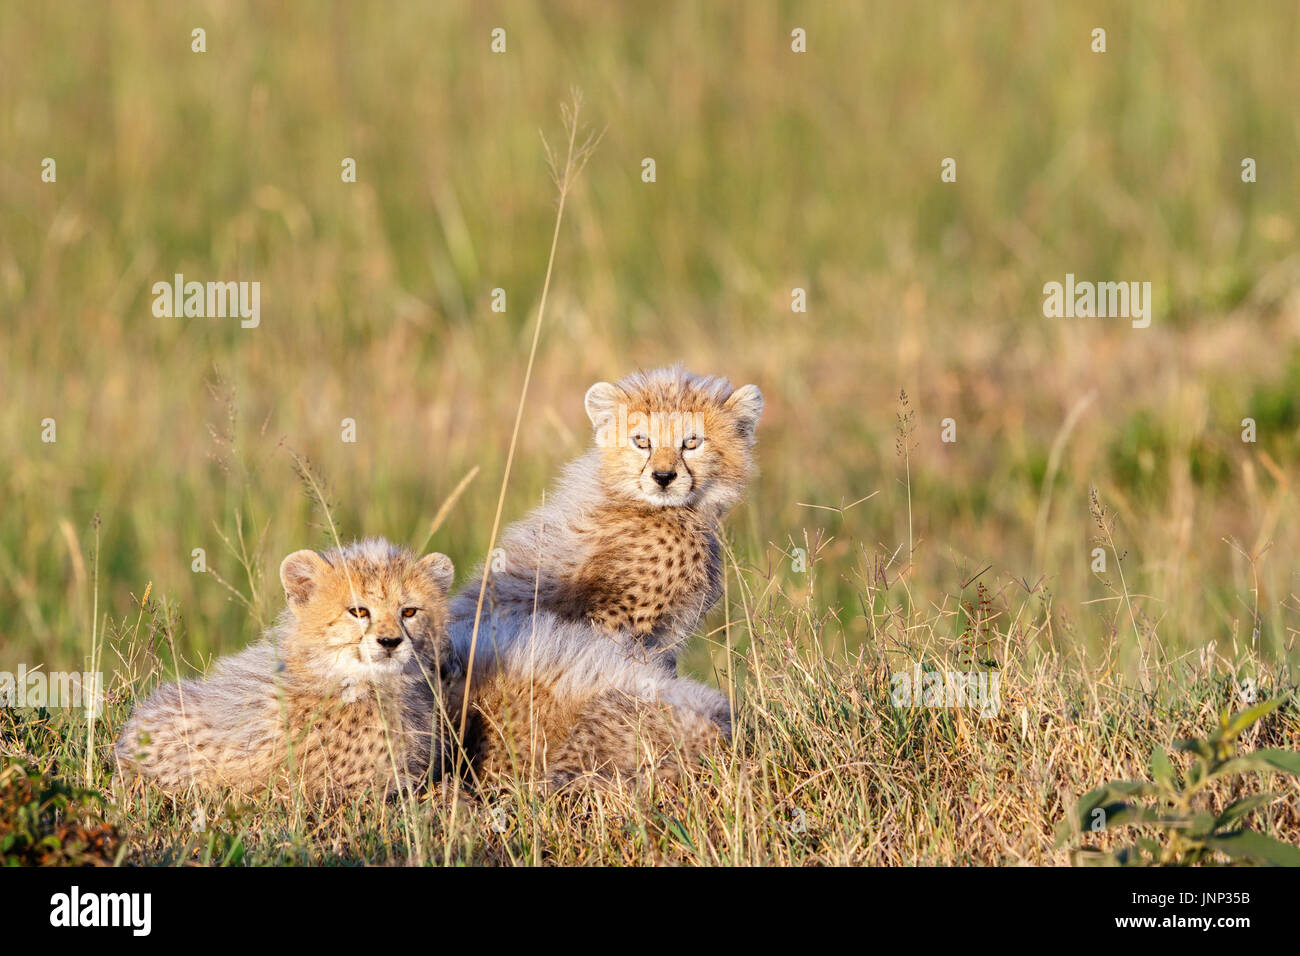 Young cheetah cubs hiding in the grass on the savannah - Stock Image